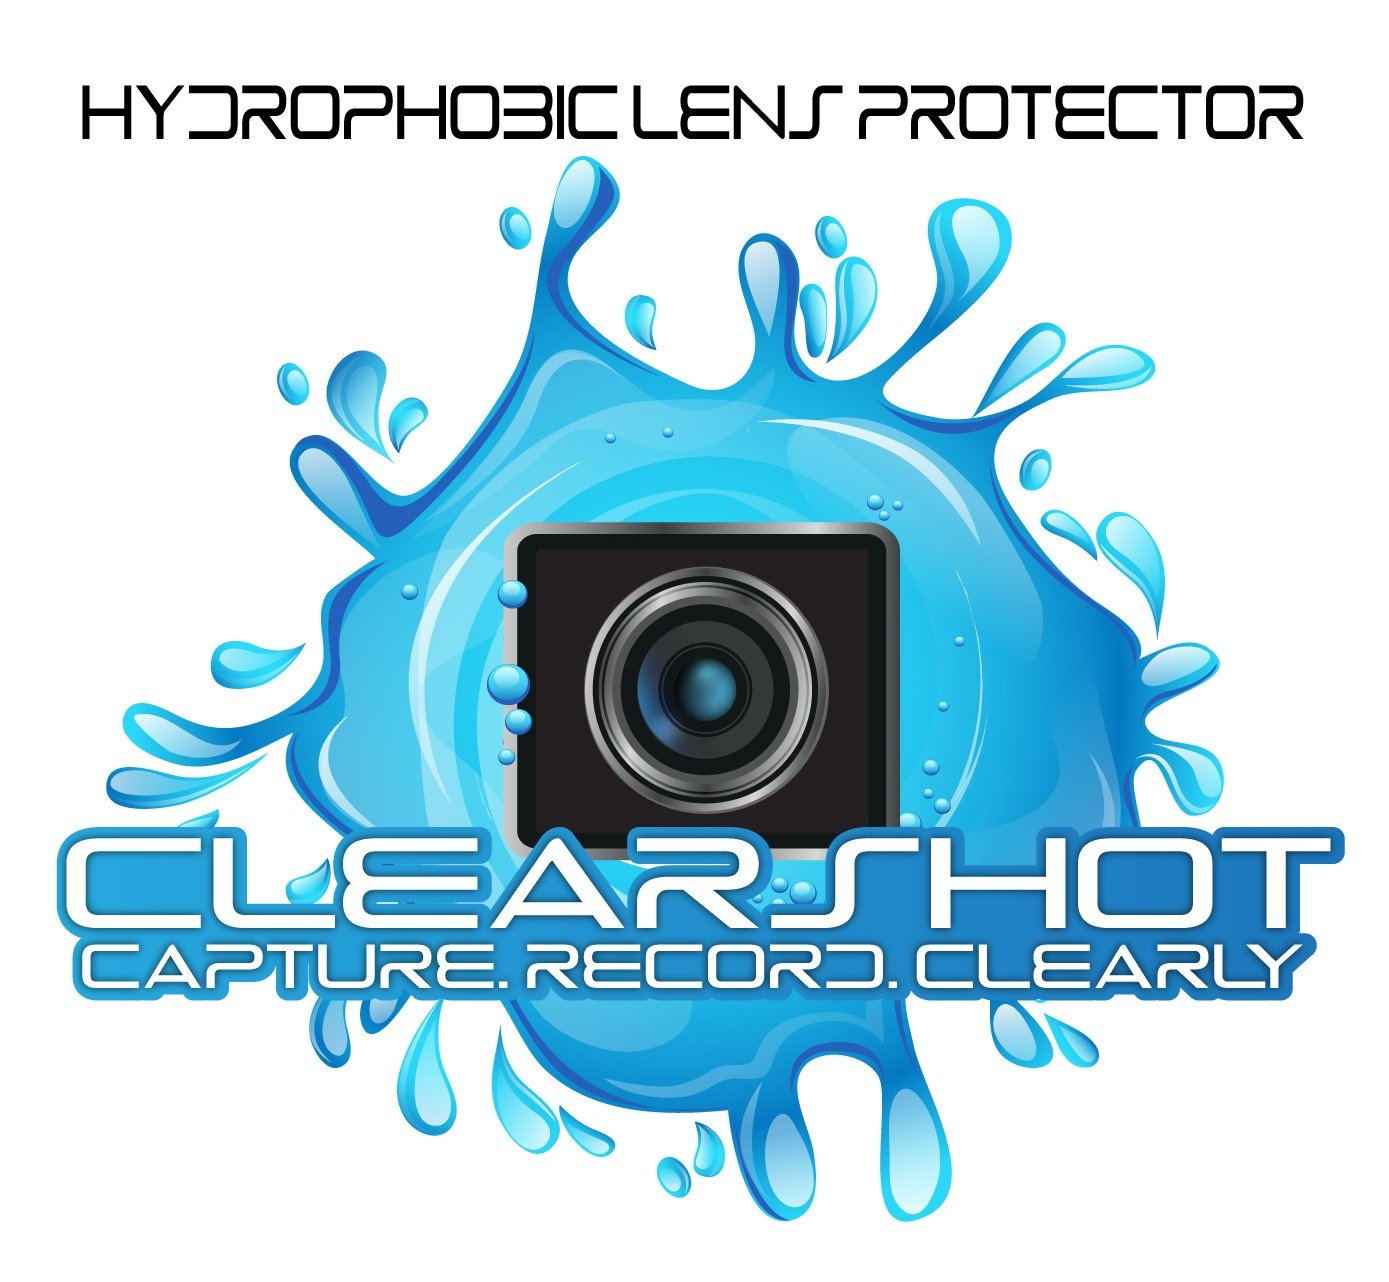 Hydrophobic Lens and Screen Protector for GoPro Hero 5/6/7 Black with Free Silicone Lens Cover ($5.99 Value). Anti-Scratch, Water/Snow Repellent, Touchscreen Compatible, Lasts up to 6 Months. by ClearShot